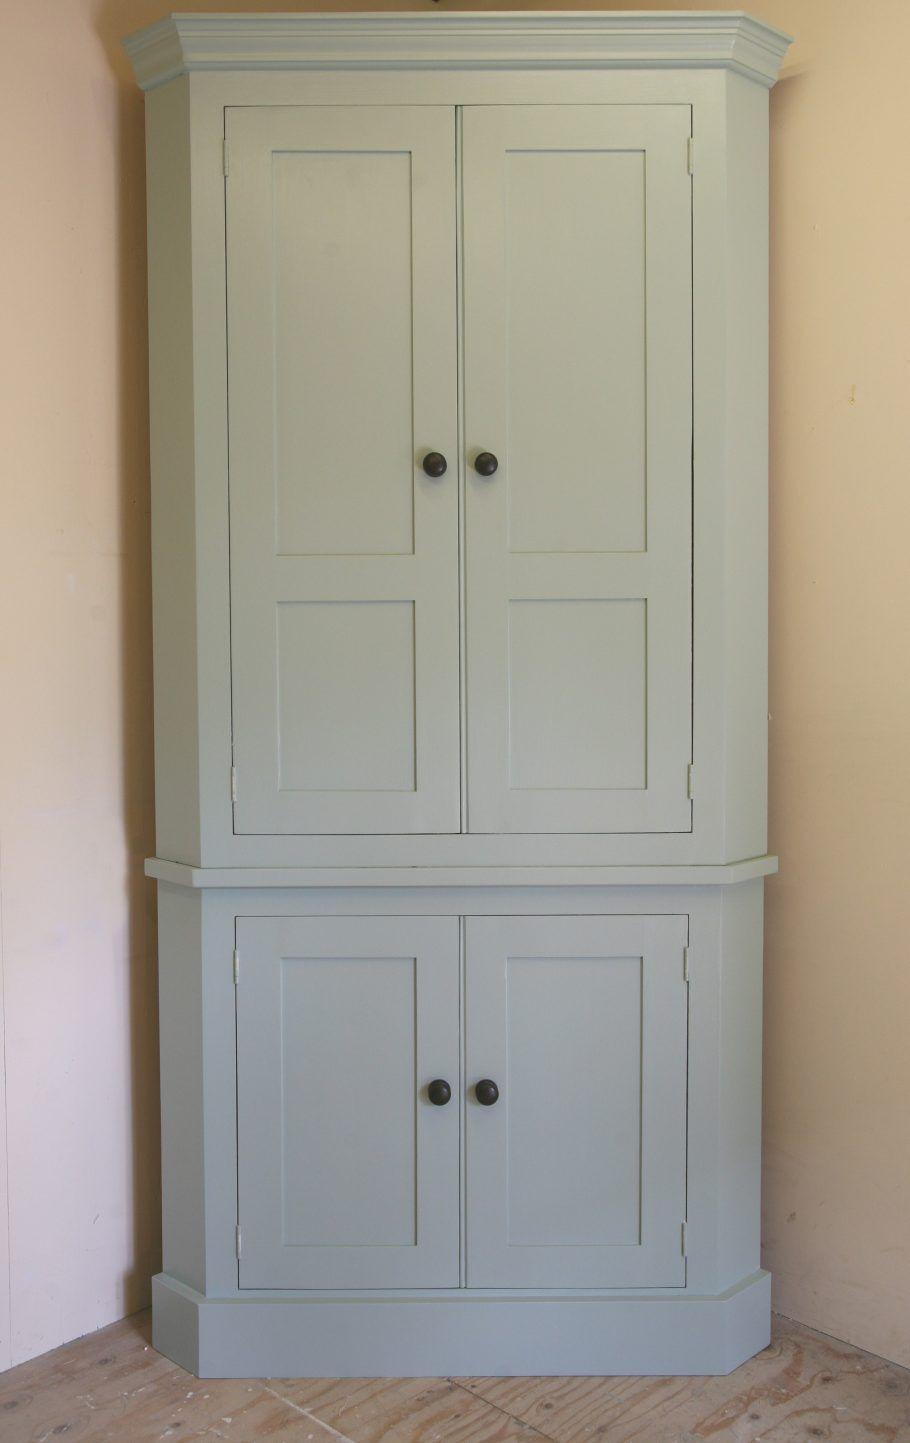 Free Standing Storage Cabinets with Doors Unique Tall White Corner Kitchen Storage Cabinet with Doors Superb